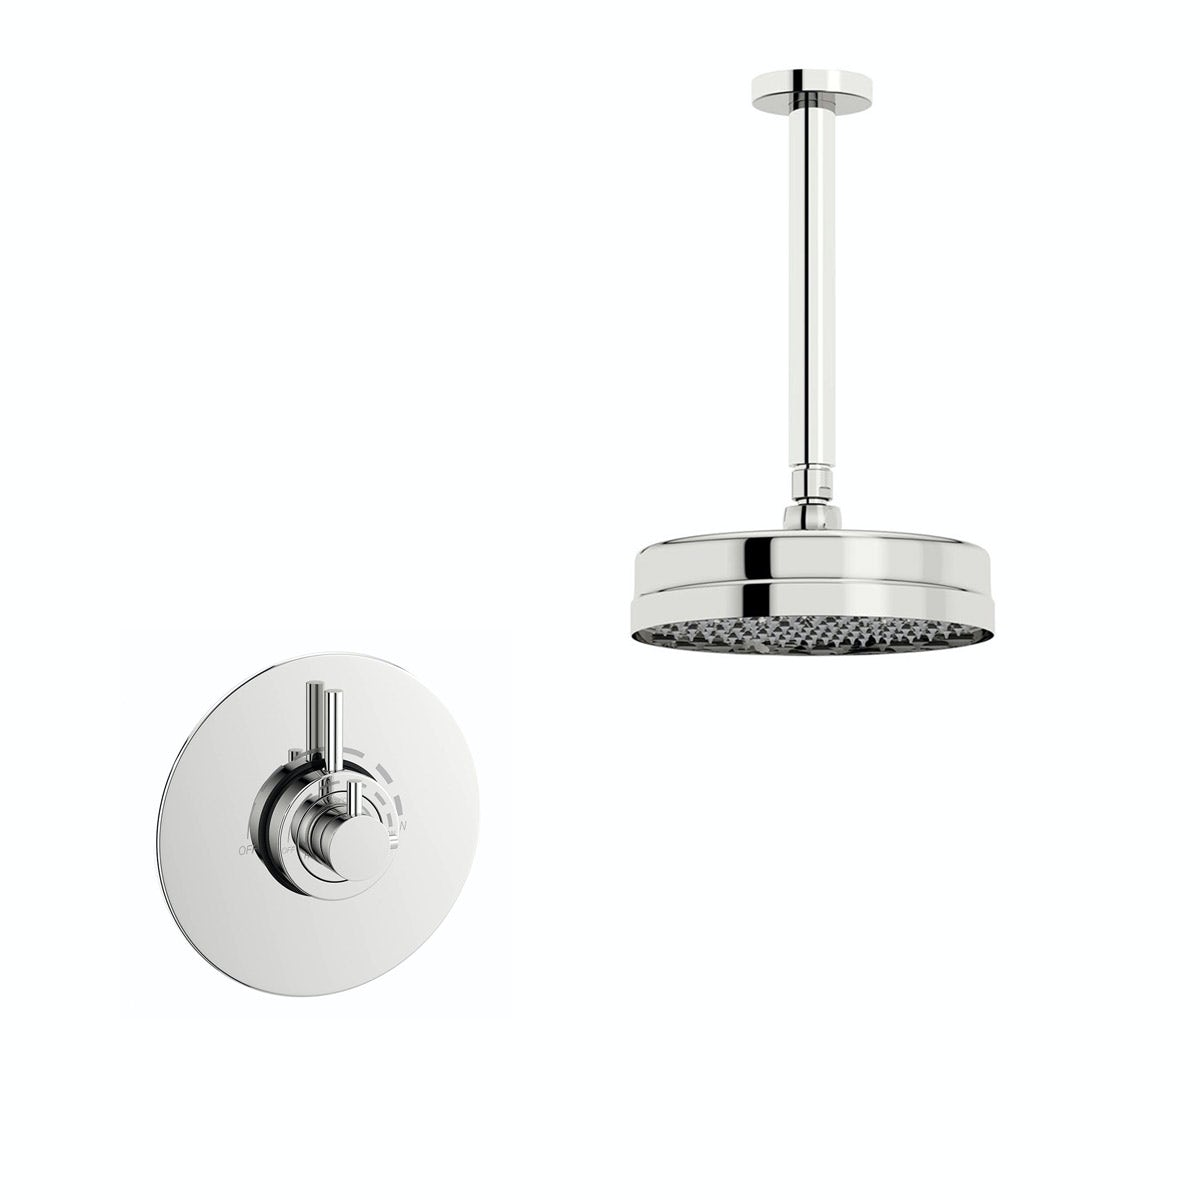 Mode Harrison concealed thermostatic shower valve with ceiling shower set